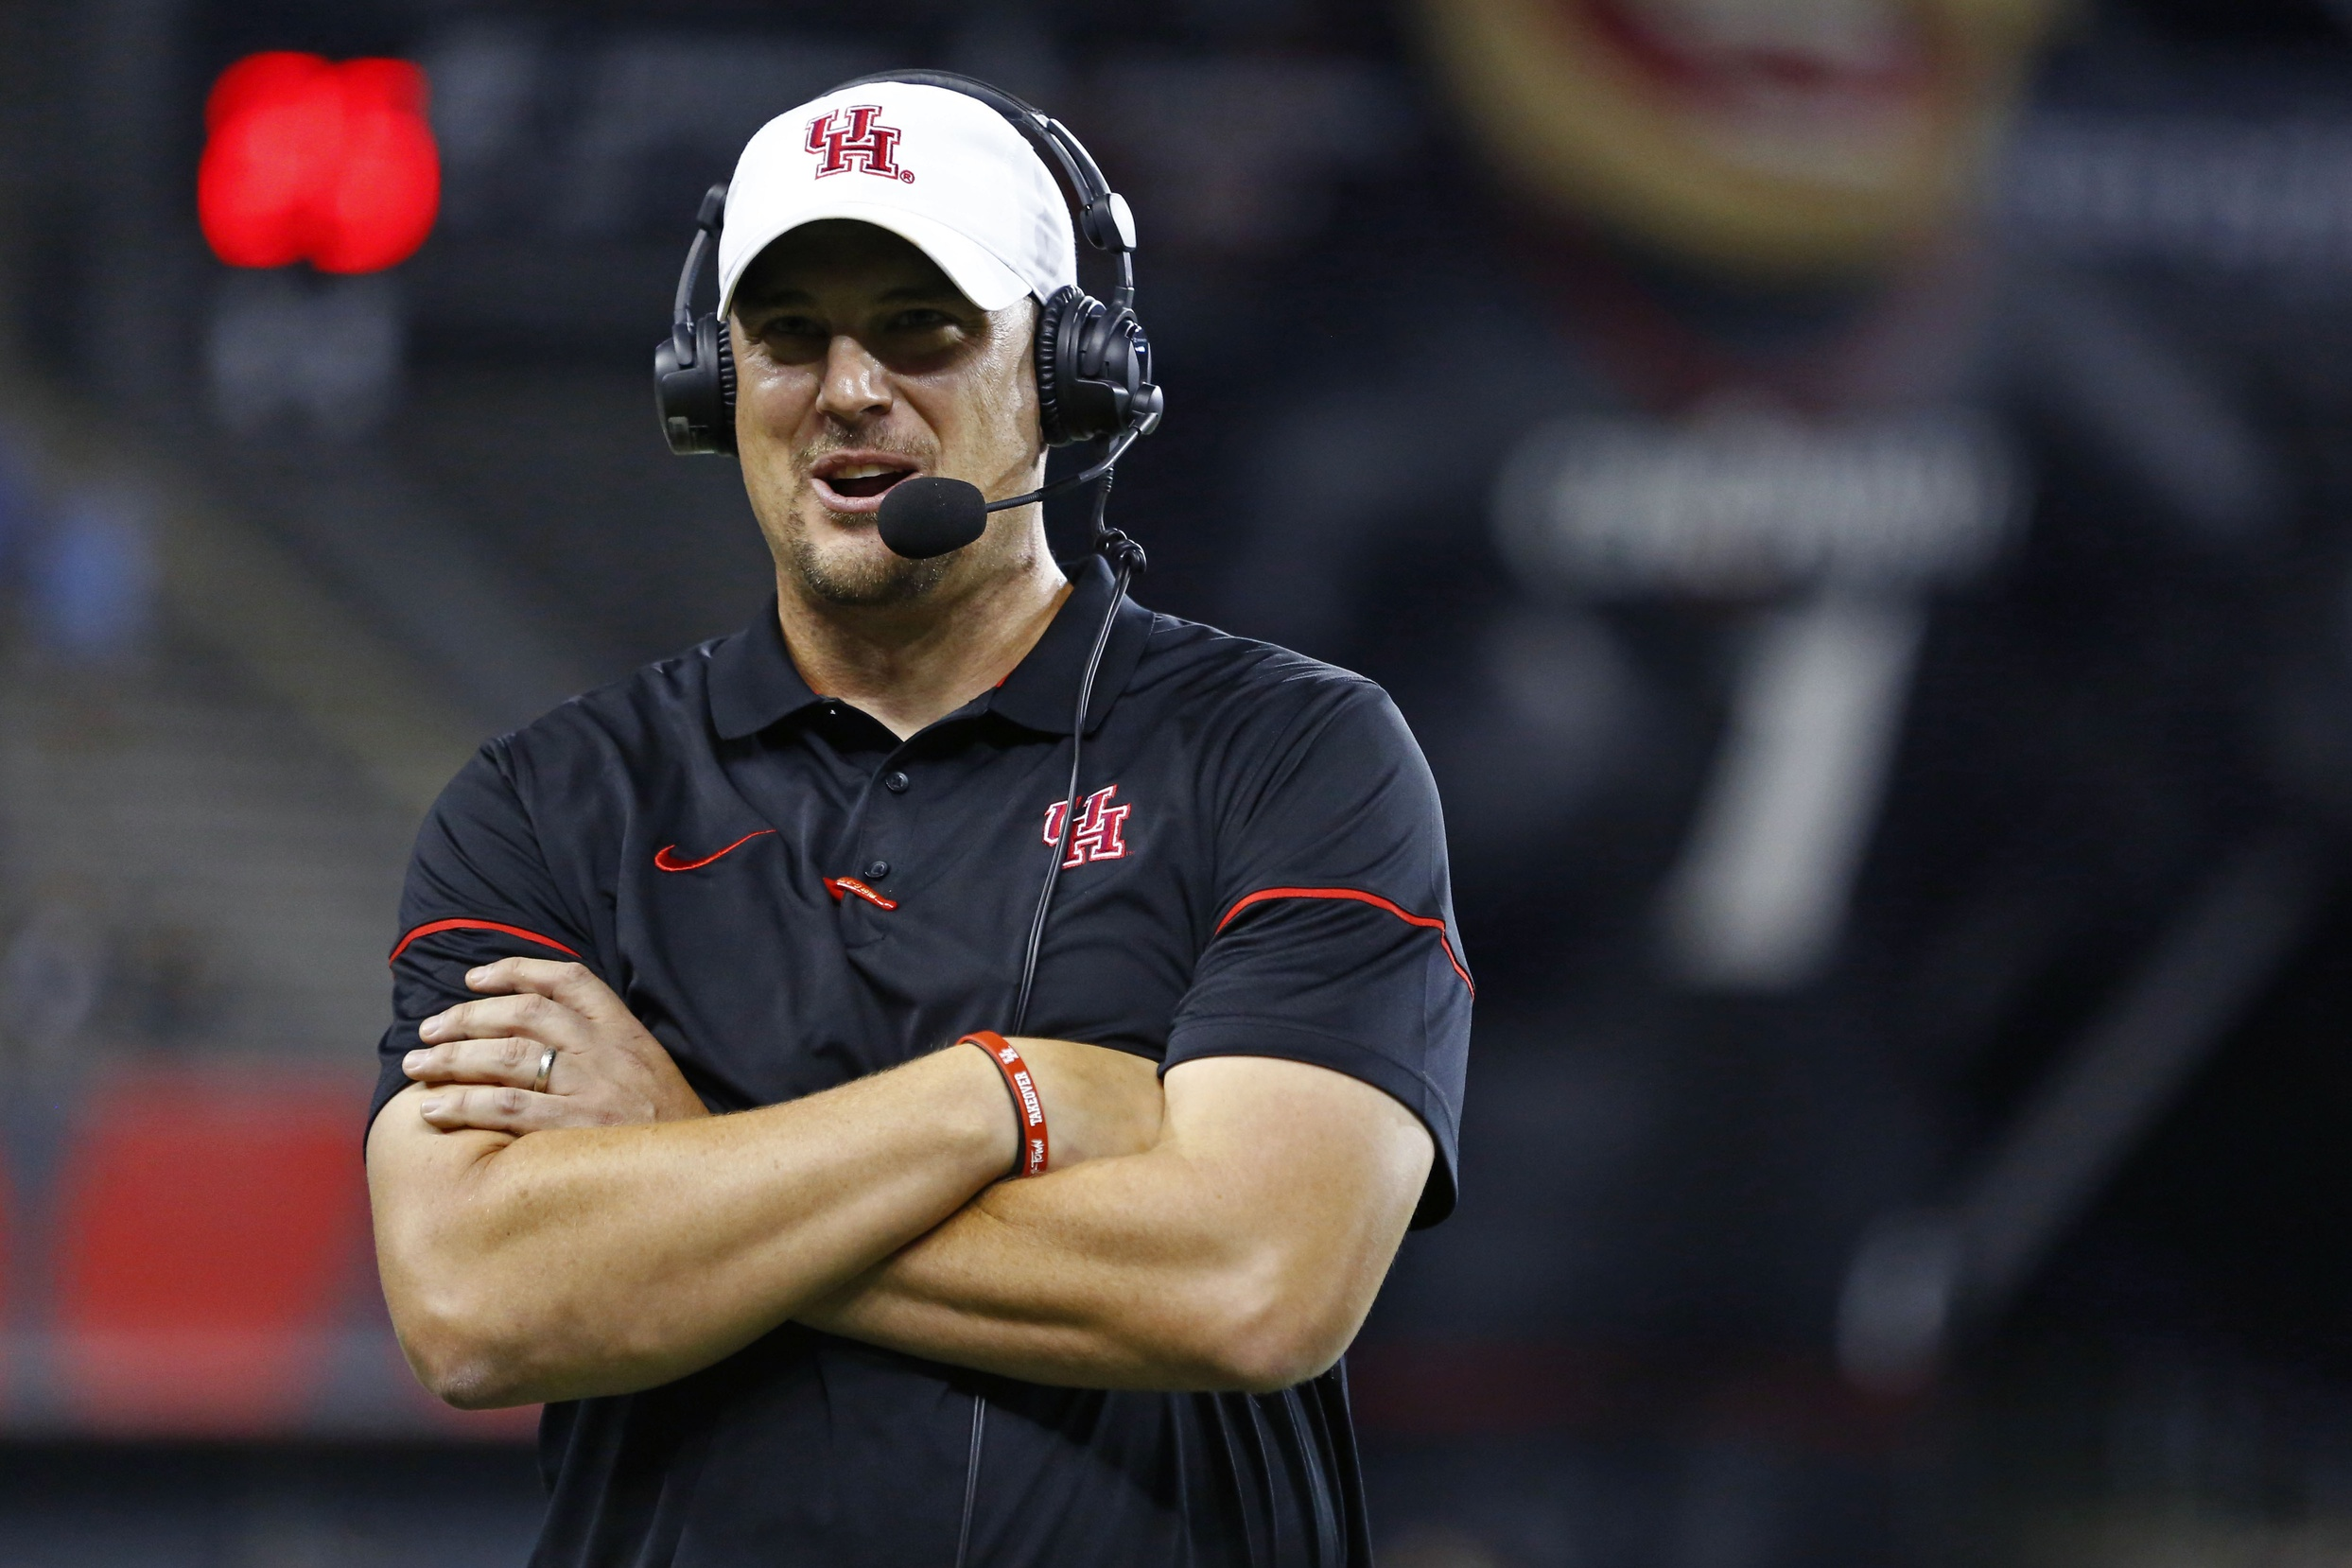 Sep 15, 2016; Cincinnati, OH, USA; Houston Cougars head coach Tom Herman answers questions during a post game interview after defeating the Cincinnati Bearcats at Nippert Stadium. Houston won 40-16. Mandatory Credit: Aaron Doster-USA TODAY Sports